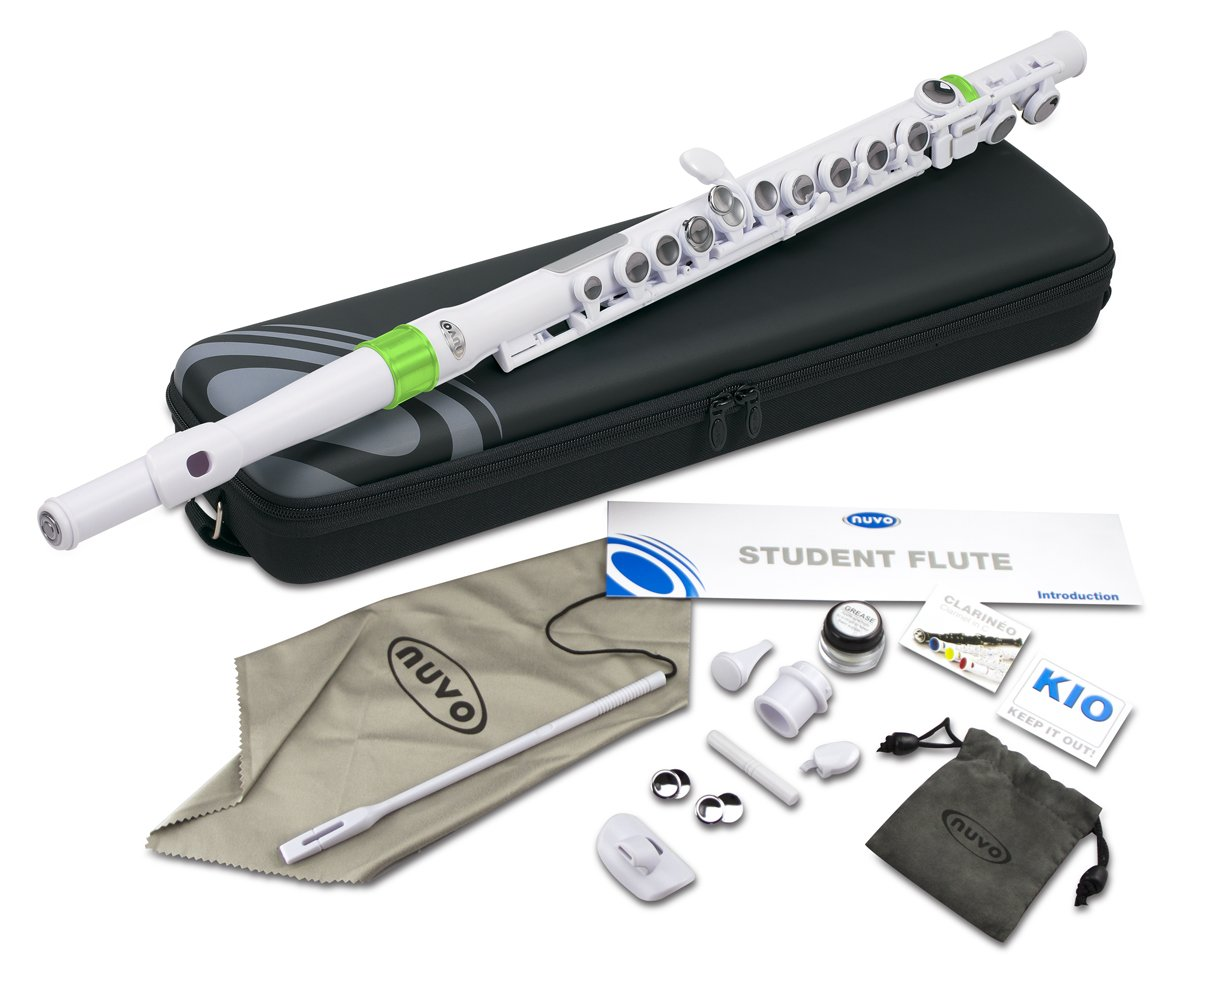 Nuvo N210SFGN Student Flute Kit with Straight Head, C-Foot, Case and Accessories-White/Green